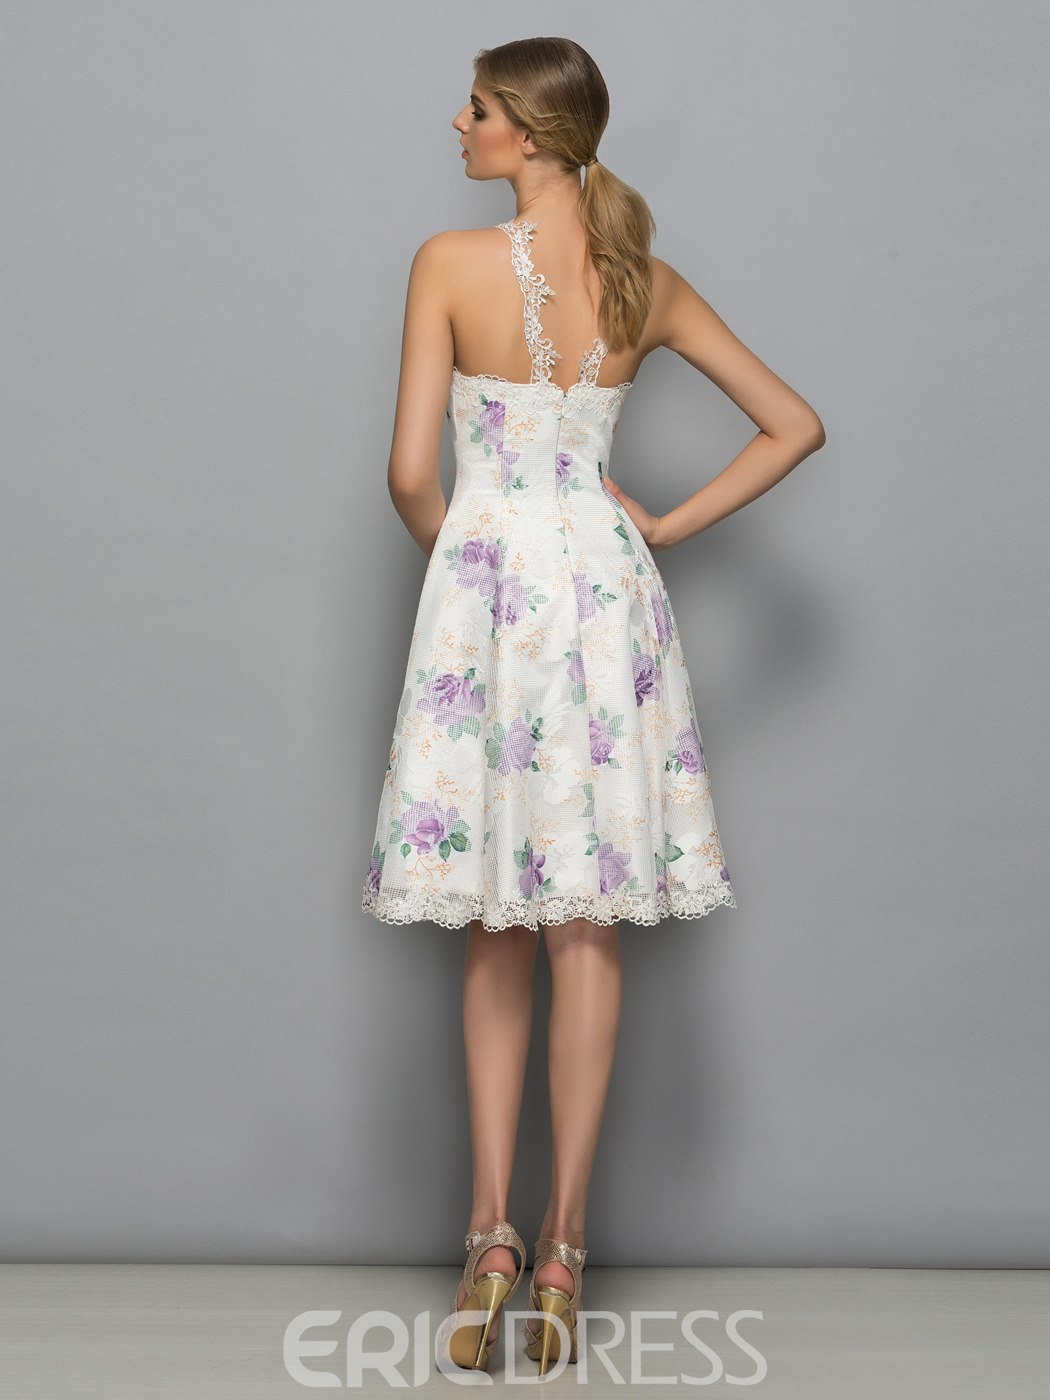 Ericdress A-Line Halter Lace Print Cocktail Dress